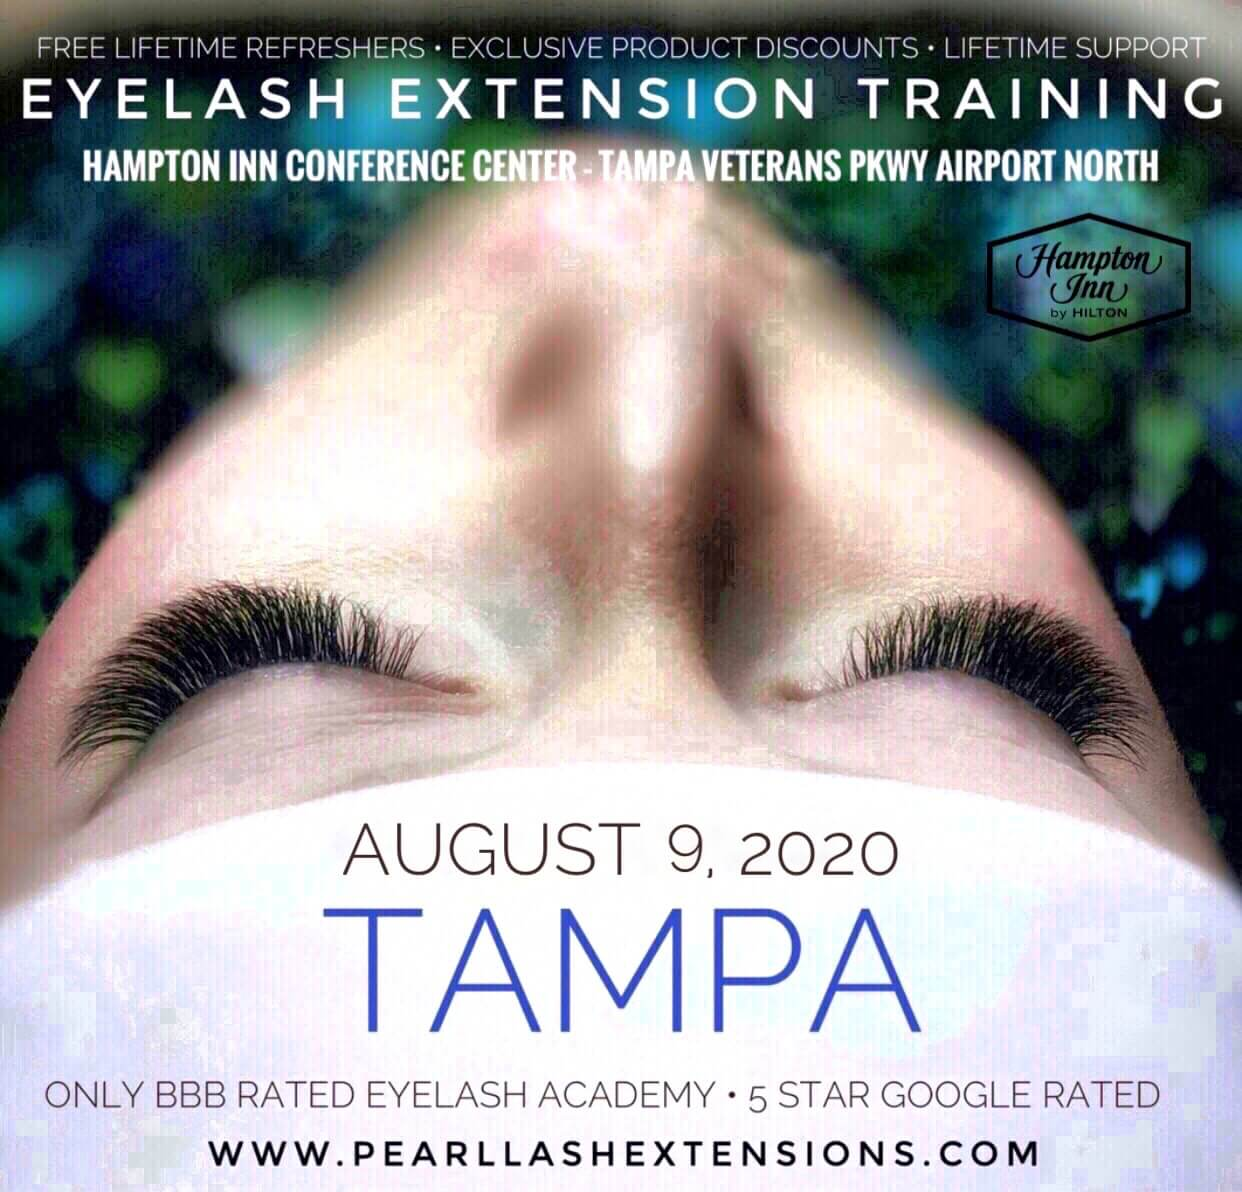 Eyalash Extension Classic Extension Training Tampa by Pearl Lash